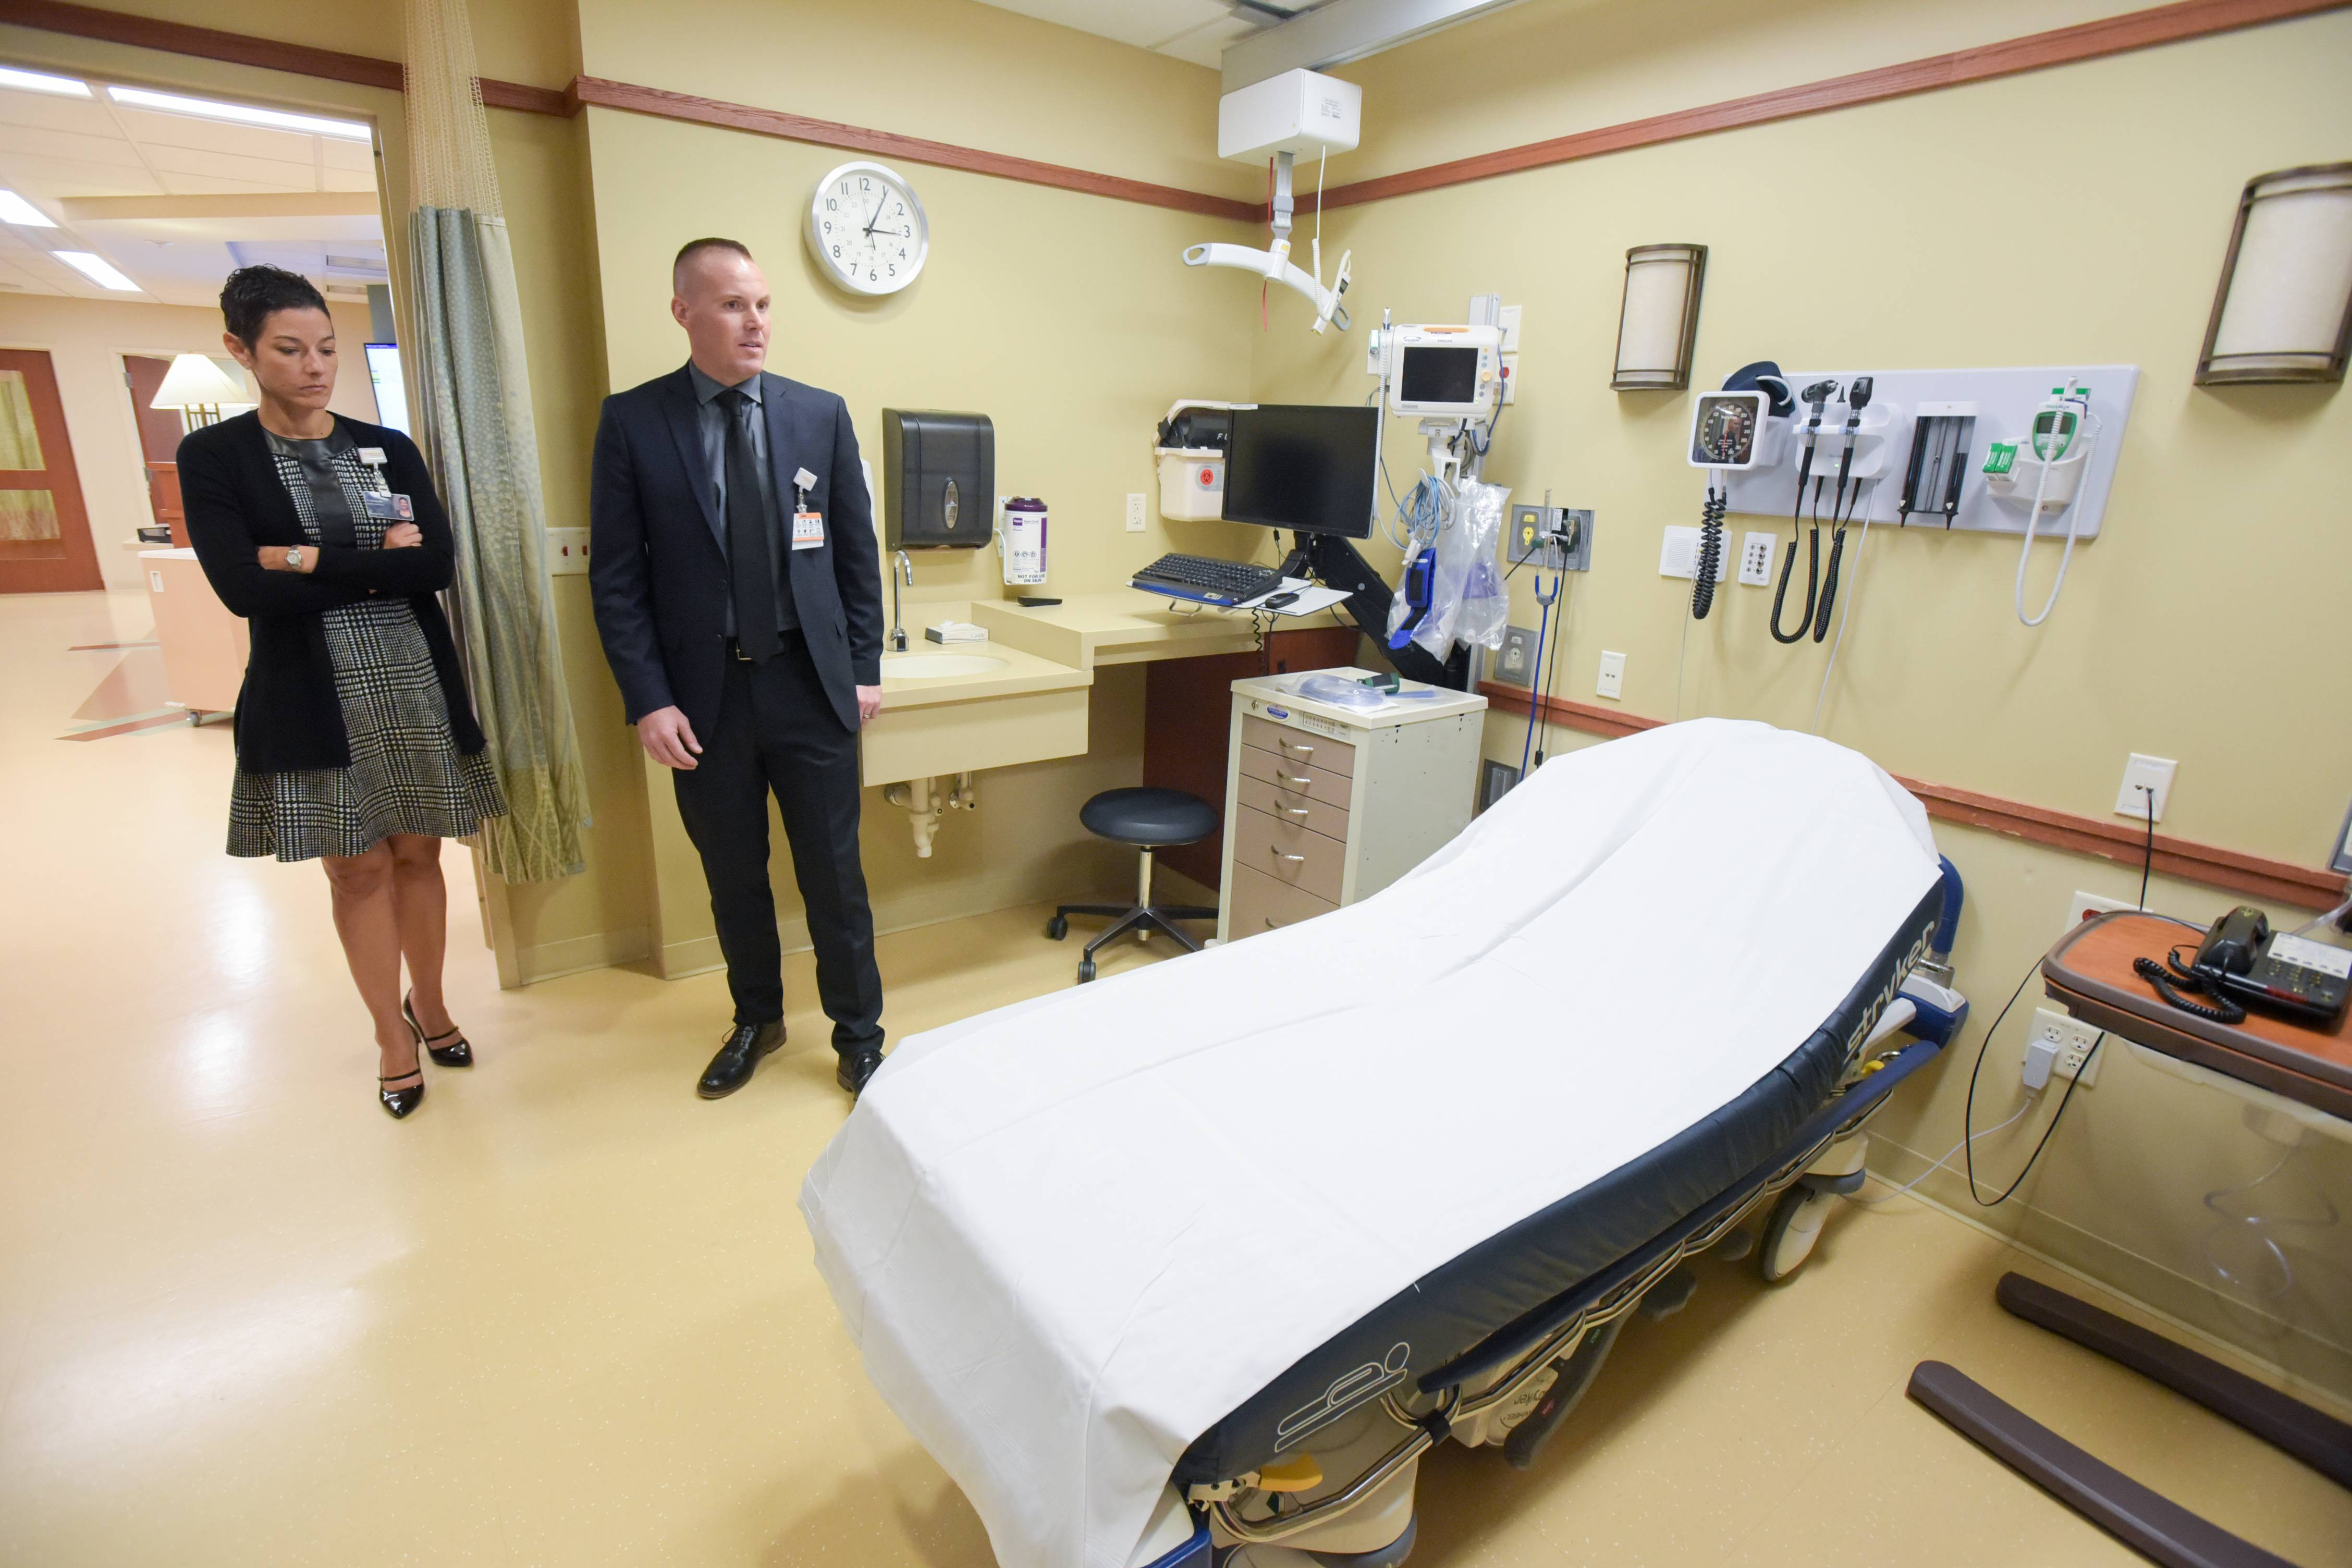 Elmhurst Hospital has added eight new beds to its emergency department. Dr. Michelle Meziere, the department's associate medical director, and Adam Johnson, the department's director, give a tour Tuesday of the addition.